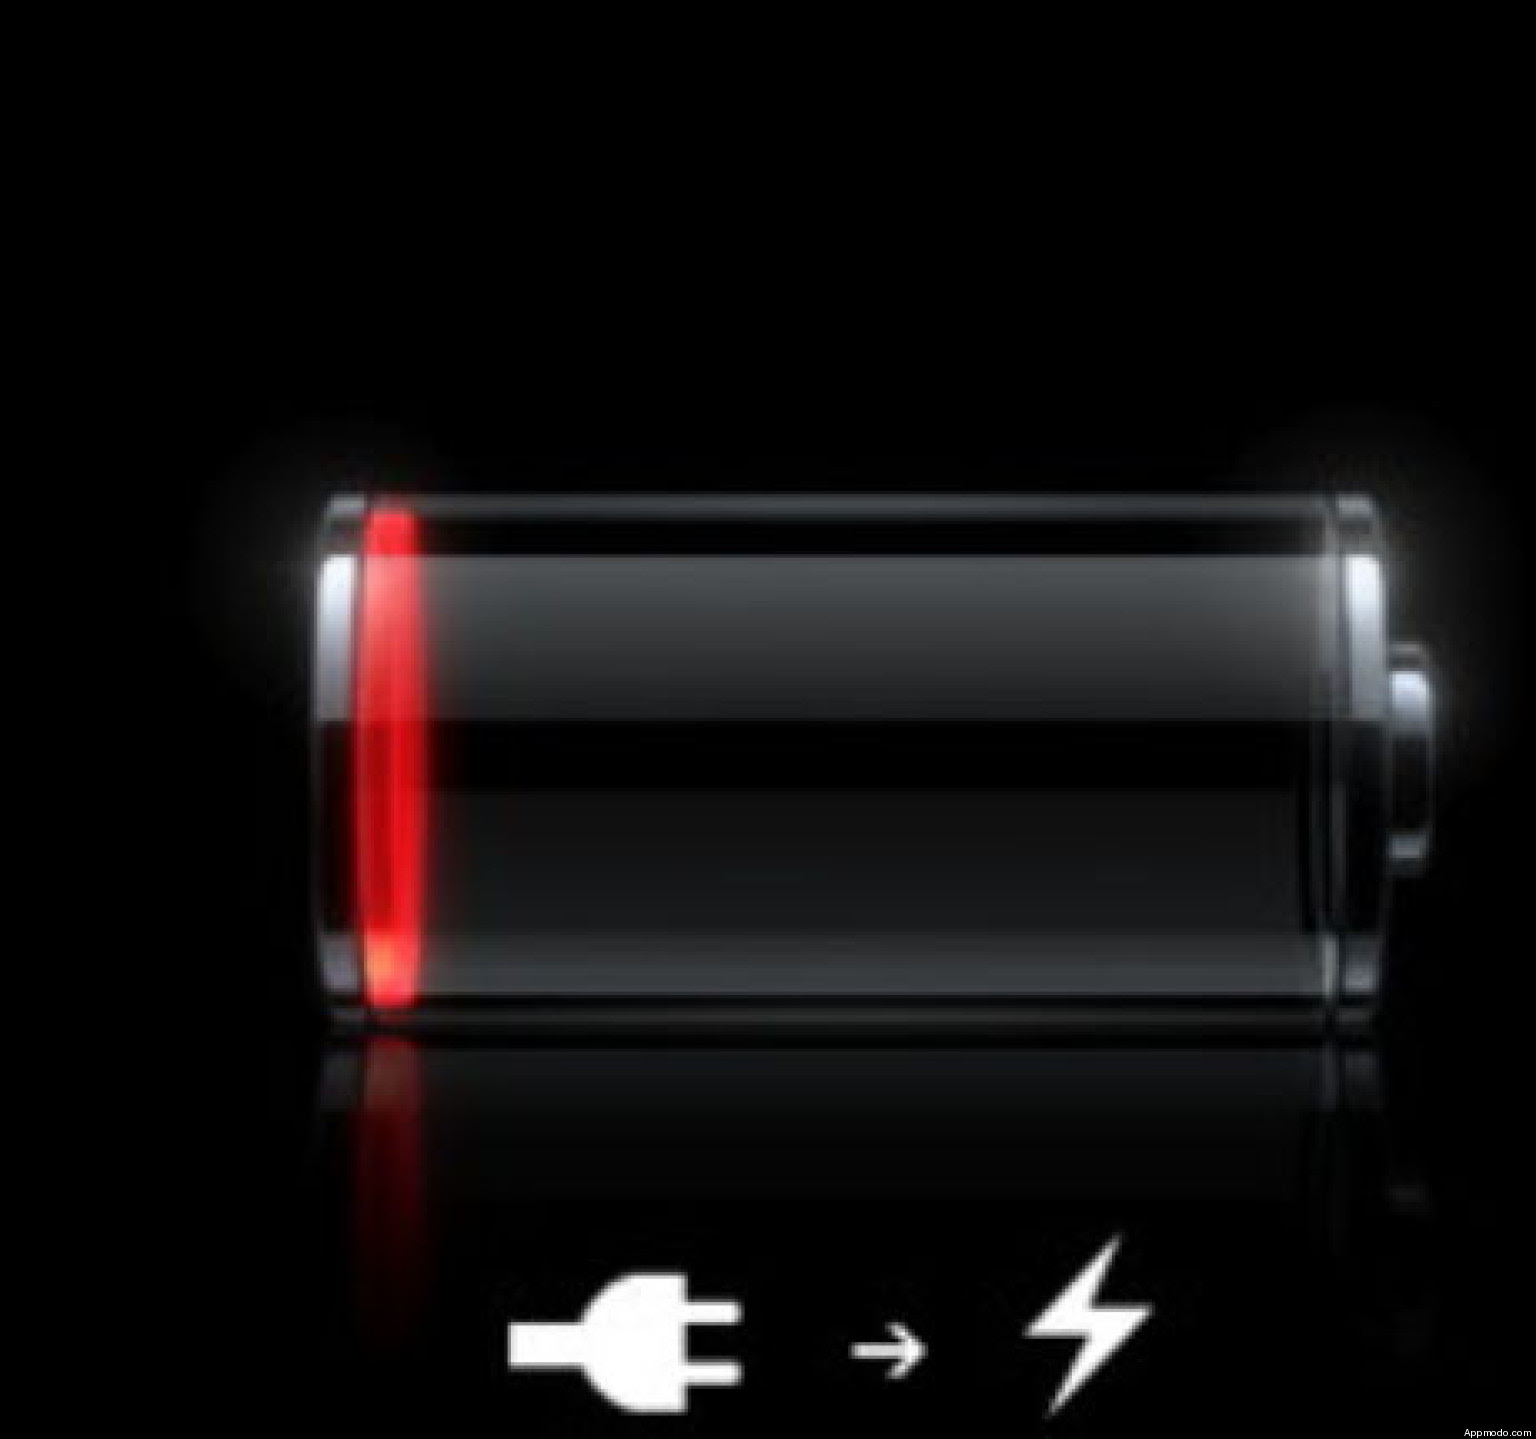 10 IPhone Battery Icon Images - iPhone 5 Battery Charging ...